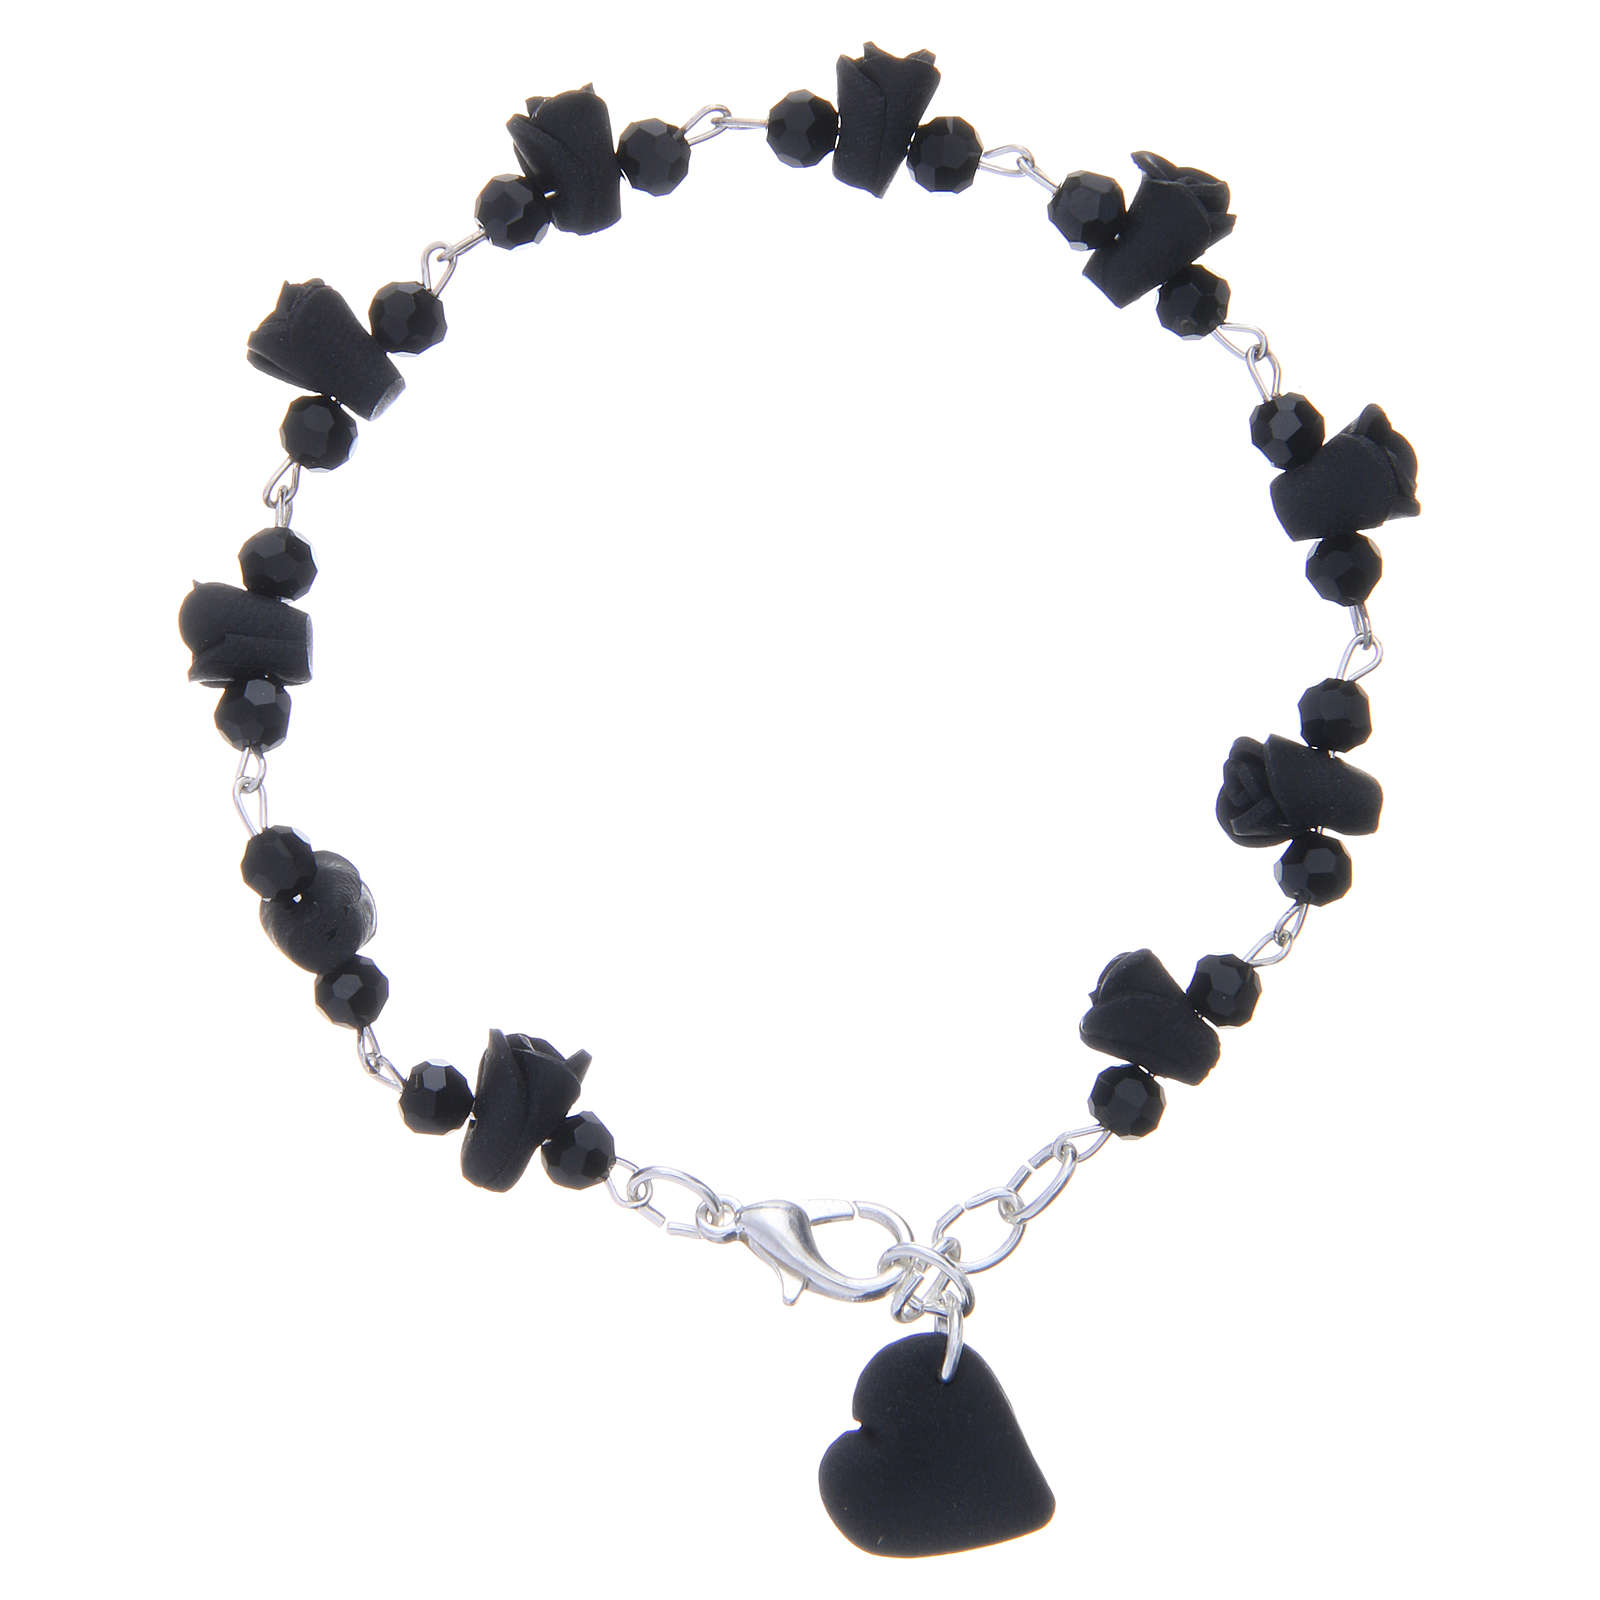 Medjugorje Rosary bracelet, black with crystal beads and ceramic hearts 4